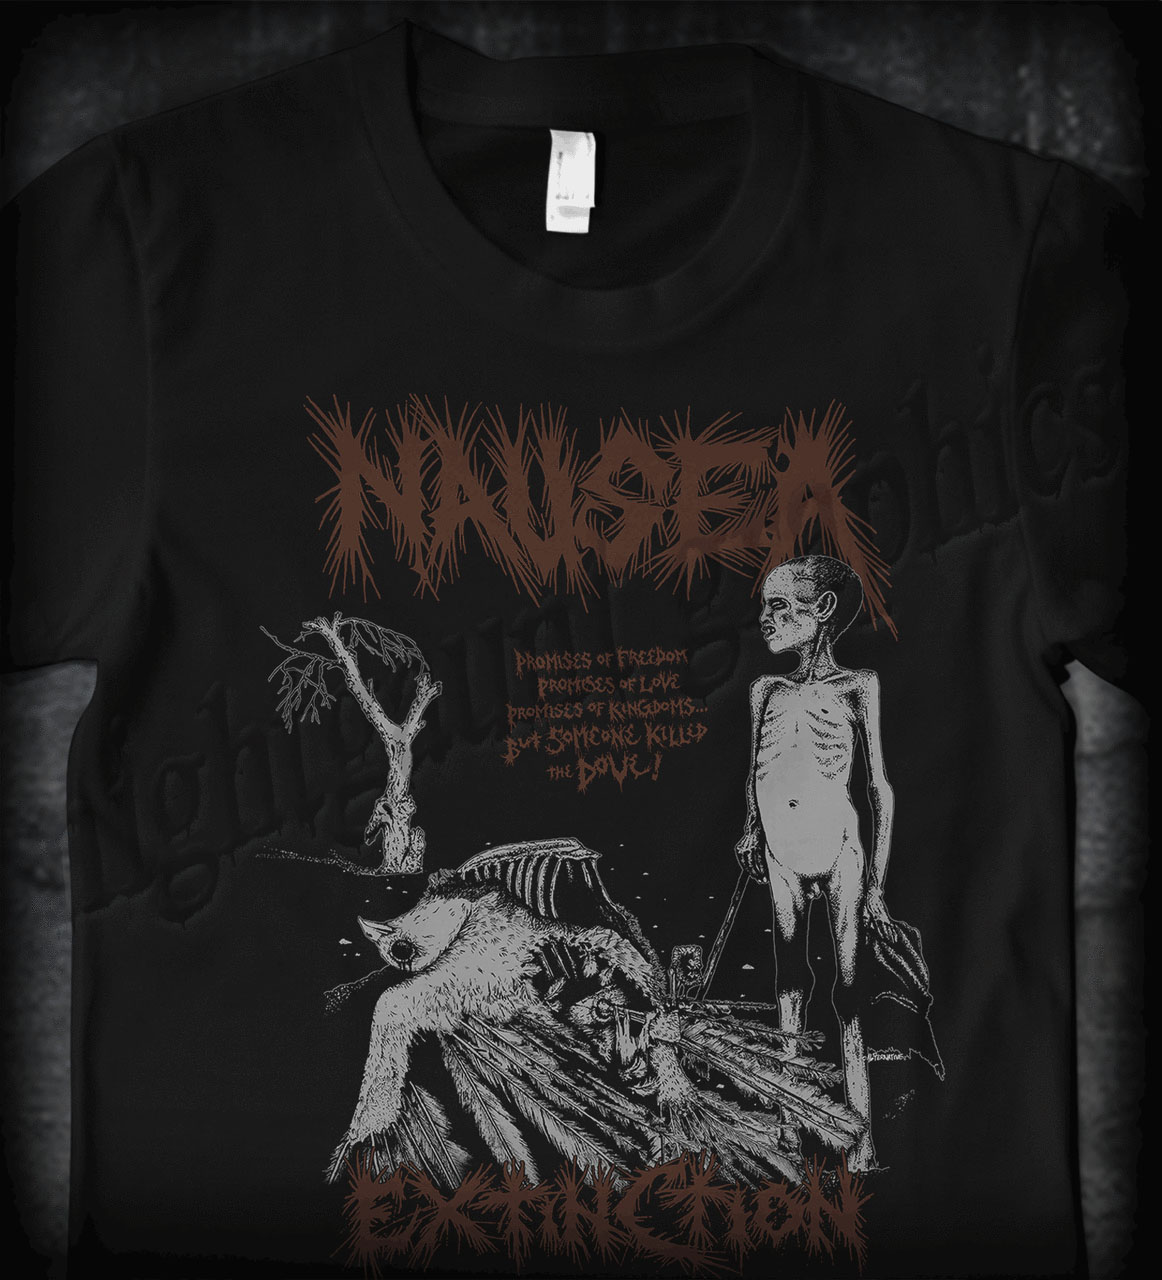 Nausea- Extinction on front, Crucifix on back on a black shirt